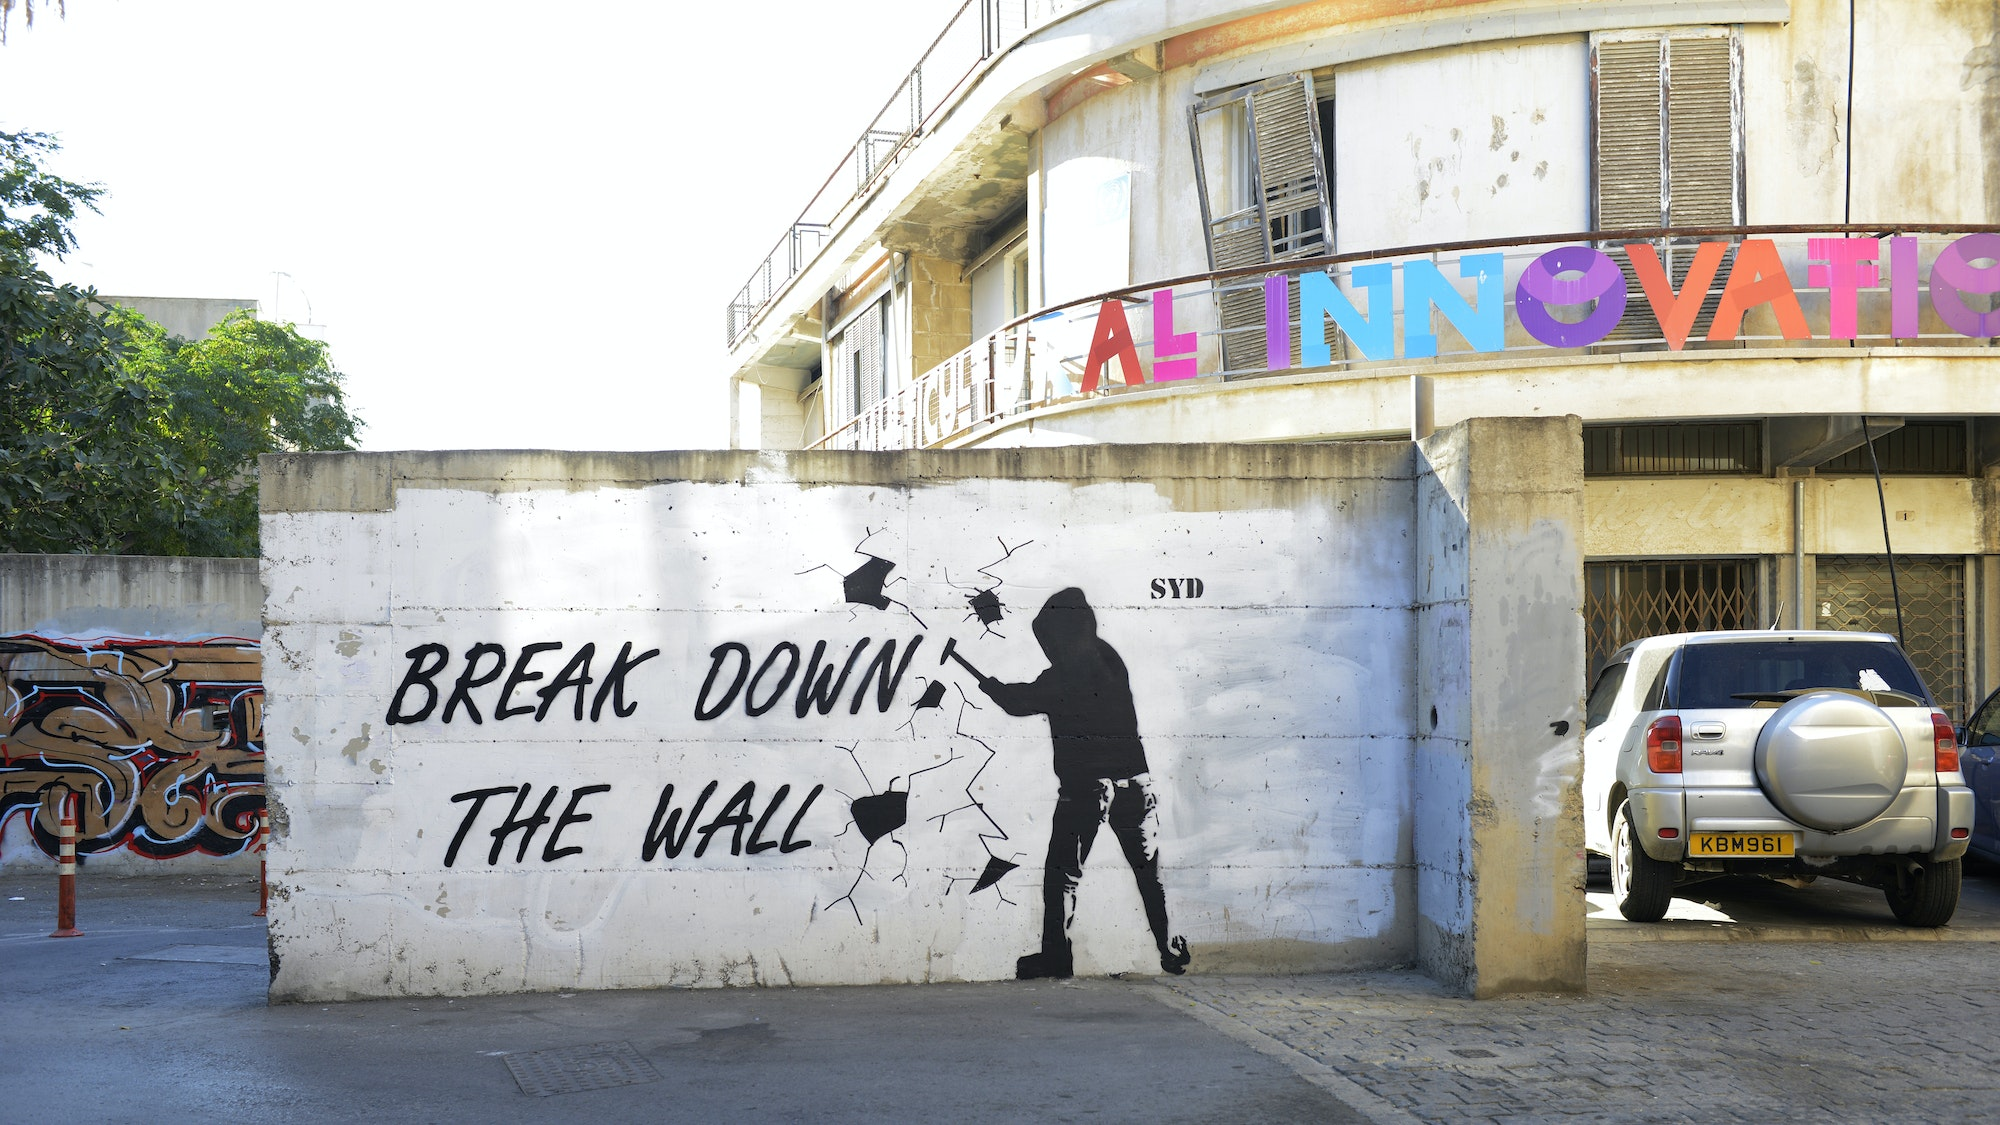 Street artist SYD's Pink Floyd-inspired mural in Nicosia, Cyprus.